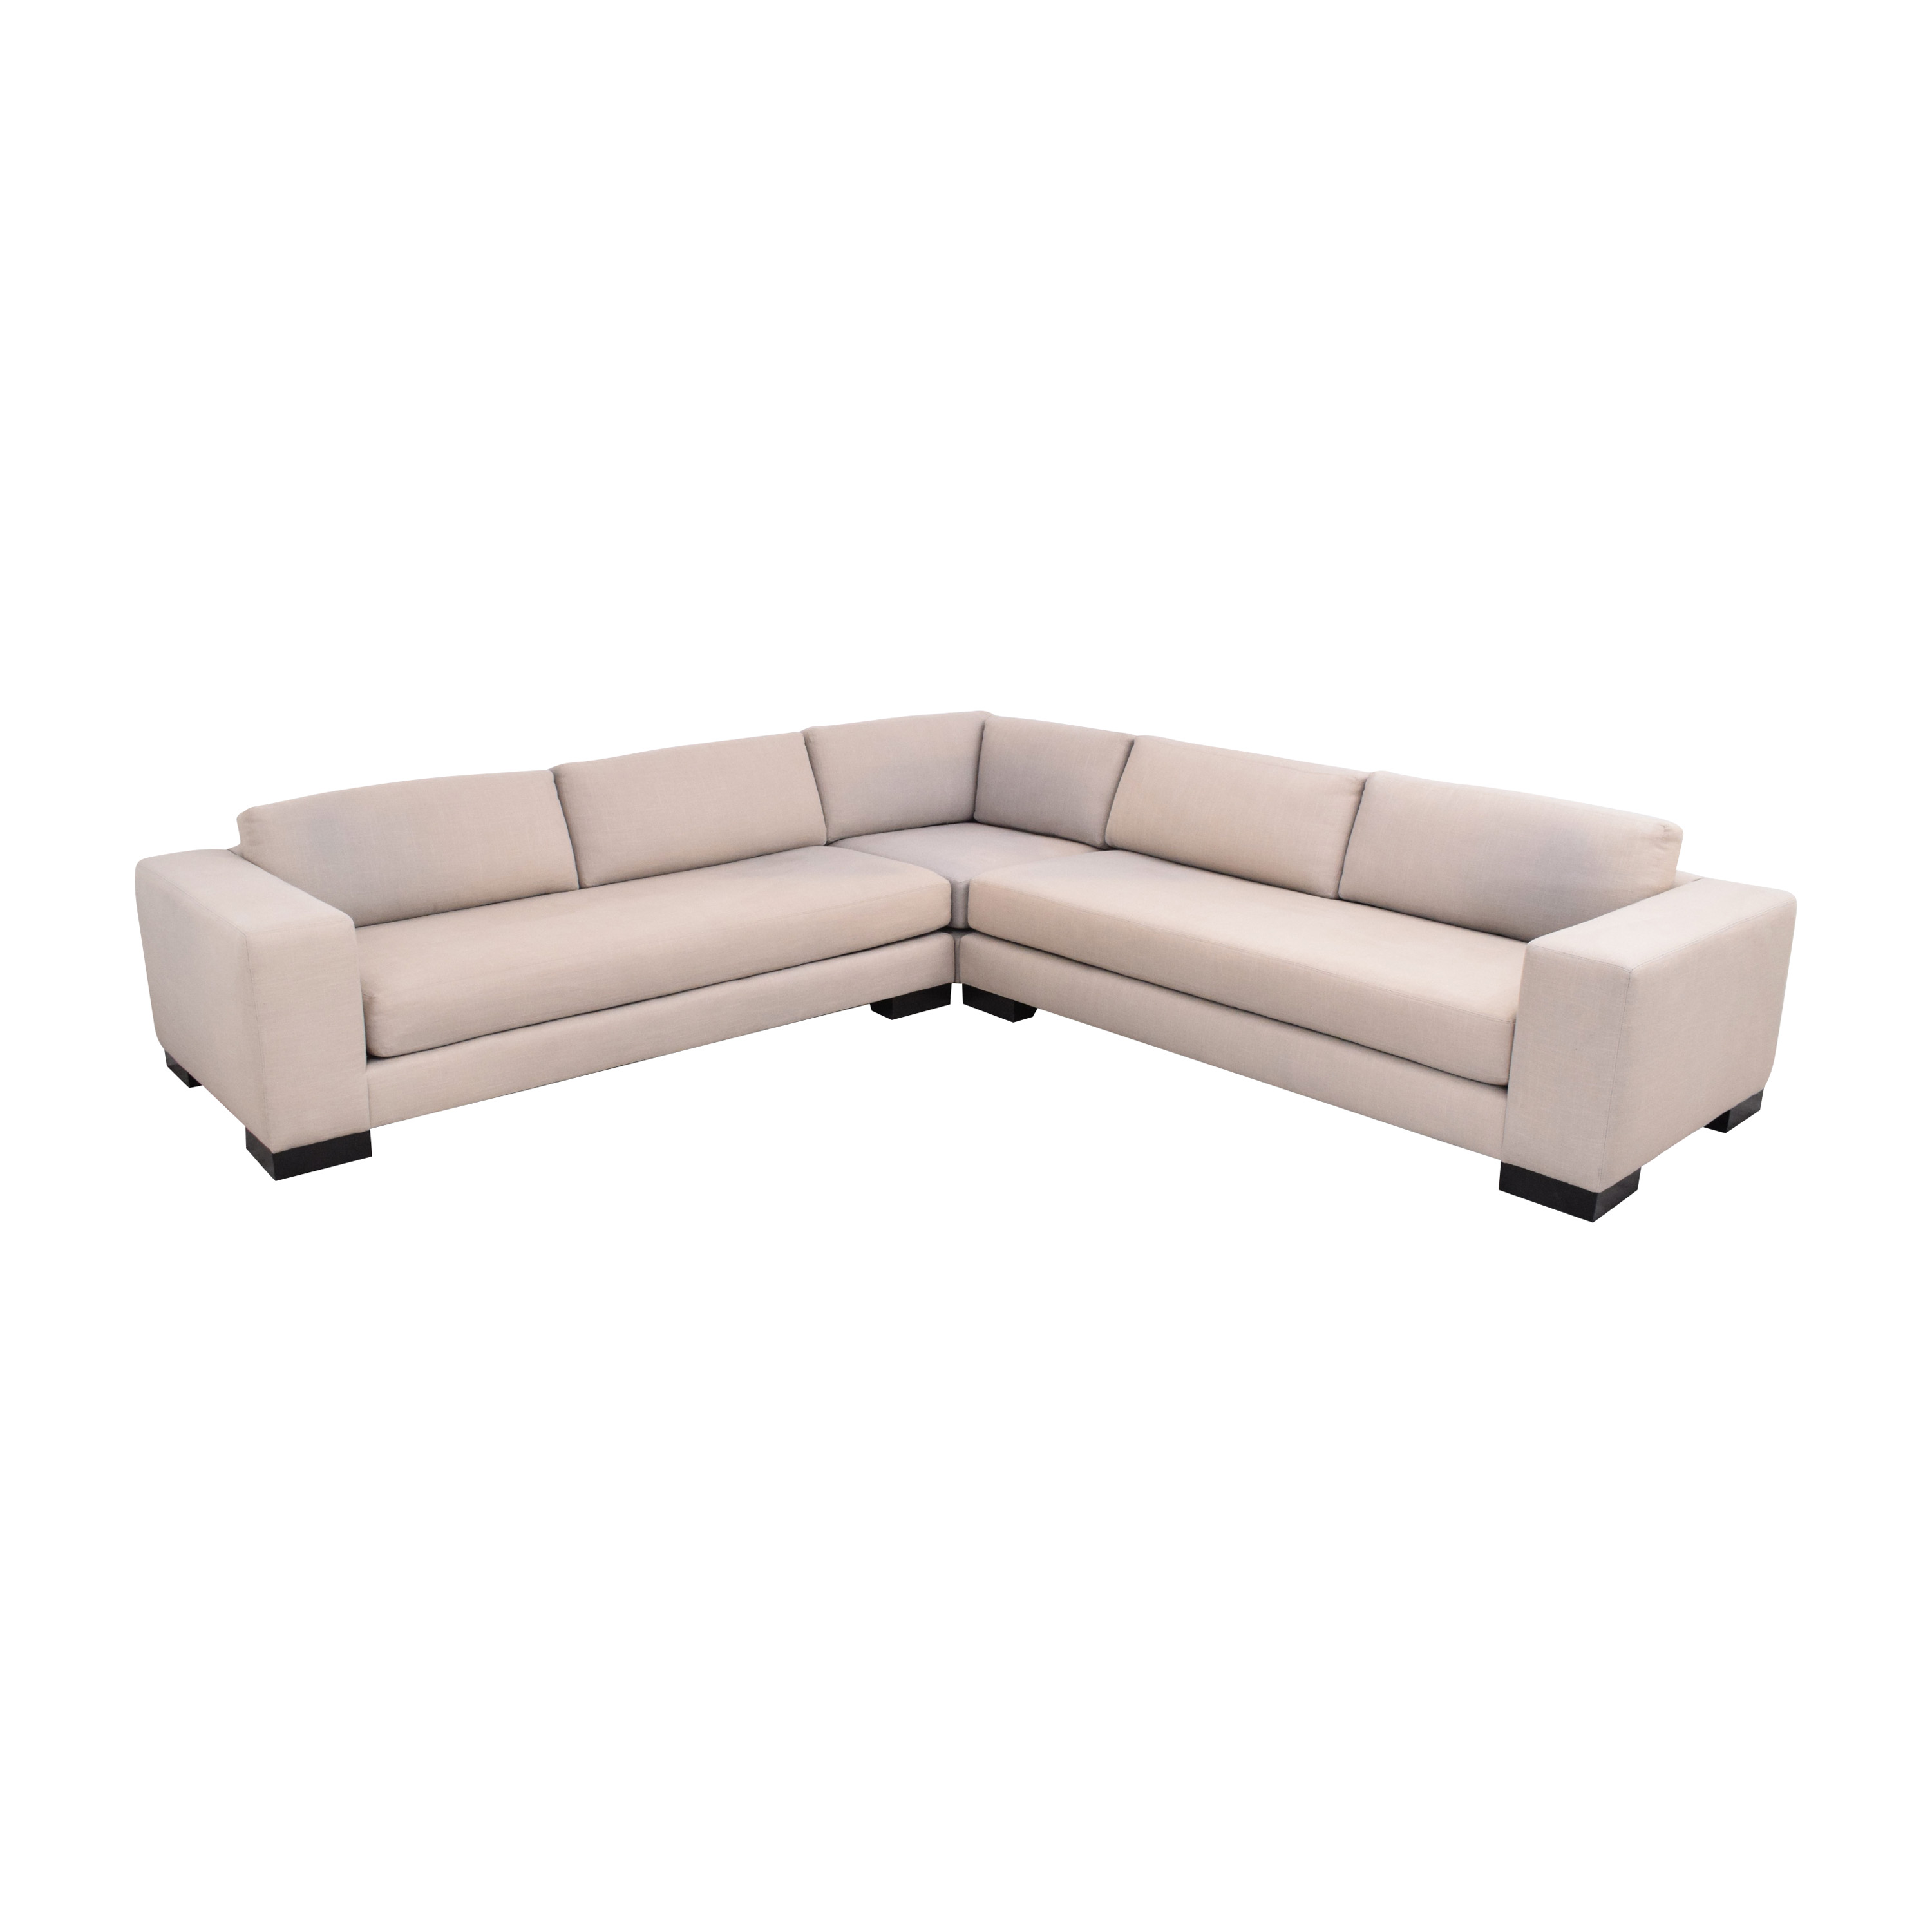 Williams Sonoma Williams Sonoma Yountville Sectional light grey